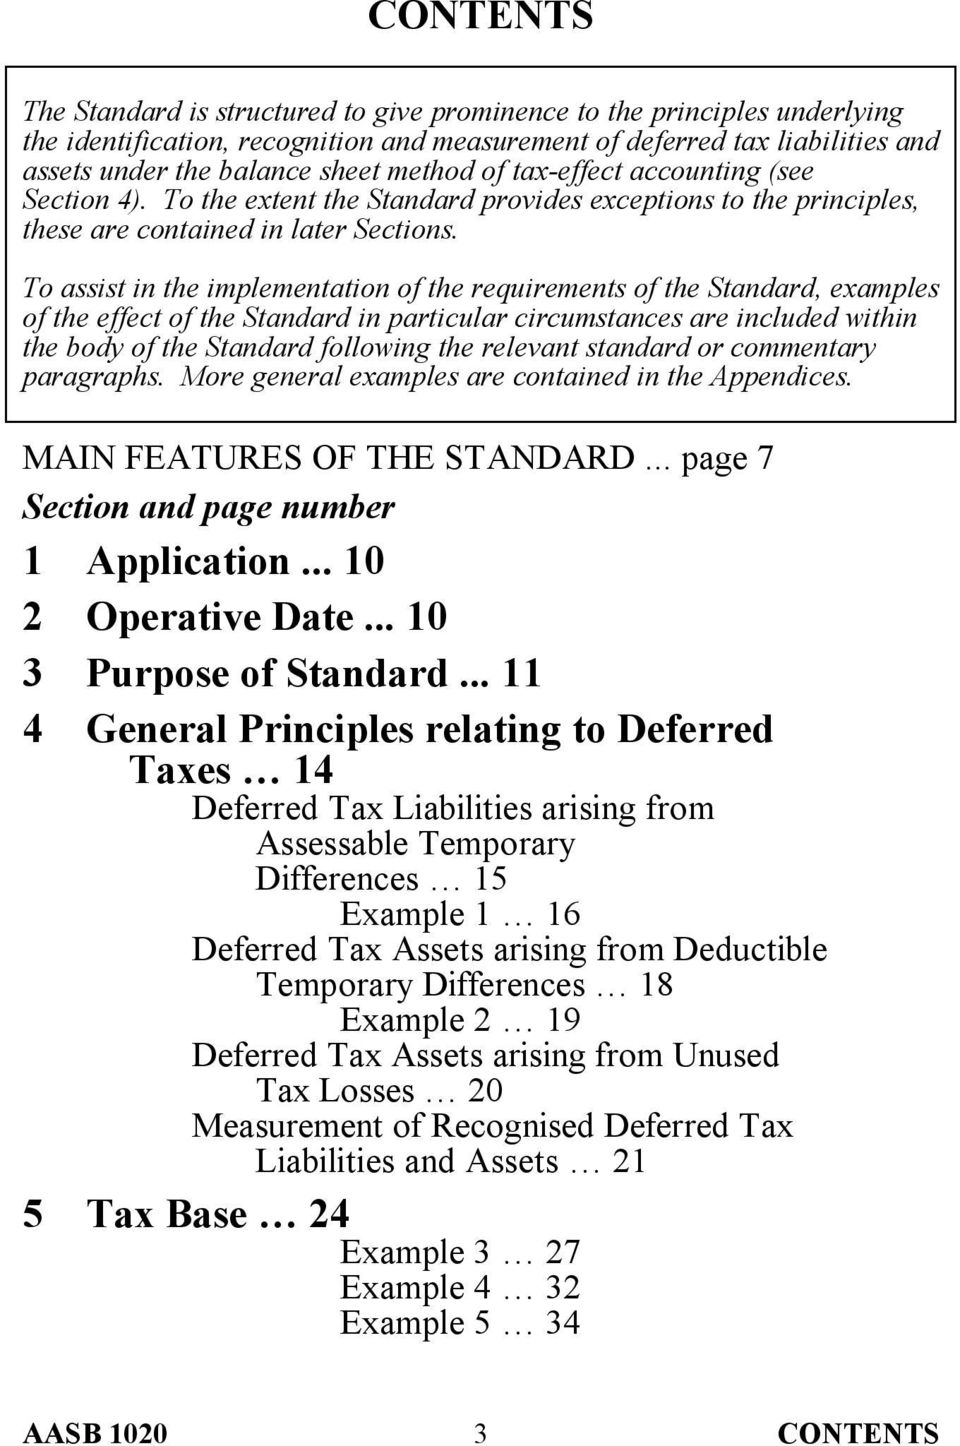 To assist in the implementation of the requirements of the Standard, examples of the effect of the Standard in particular circumstances are included within the body of the Standard following the